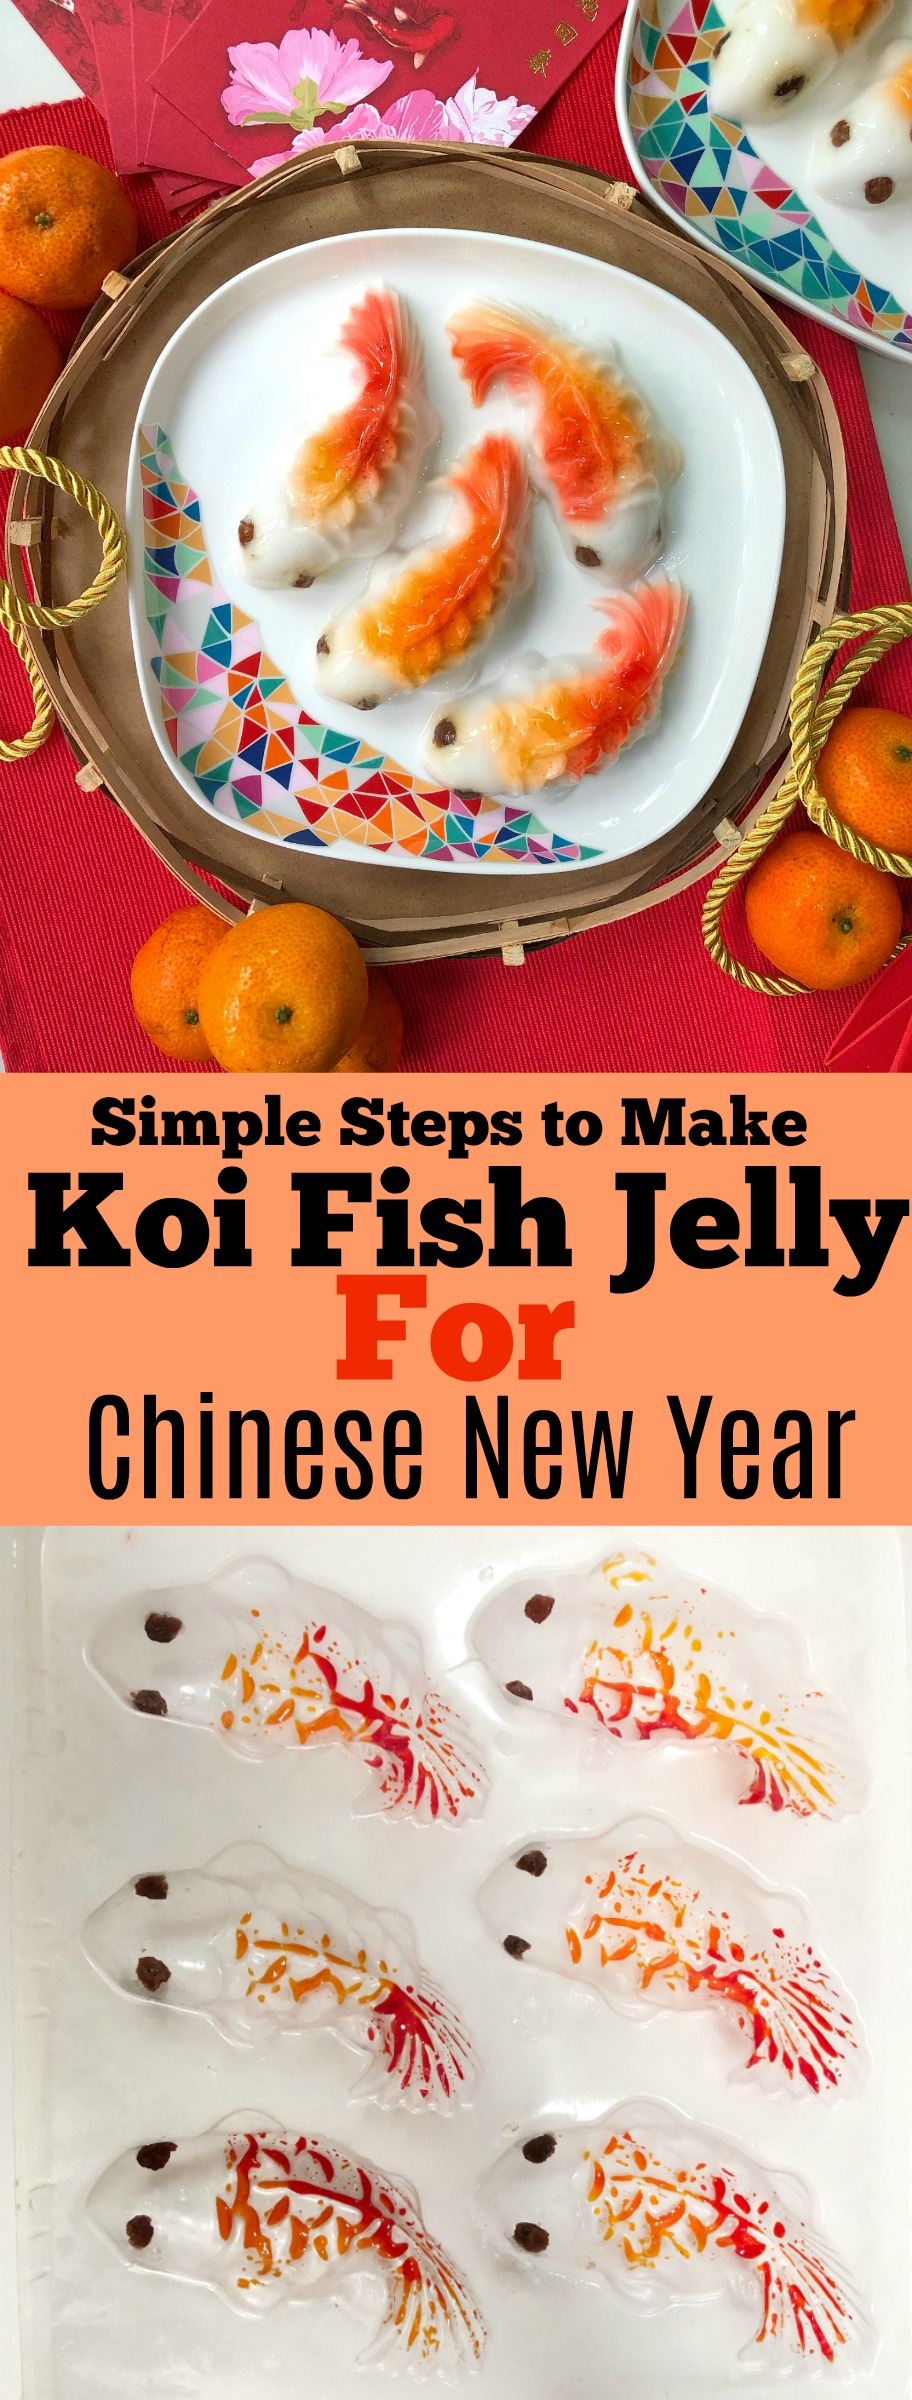 Koi Fish Jelly